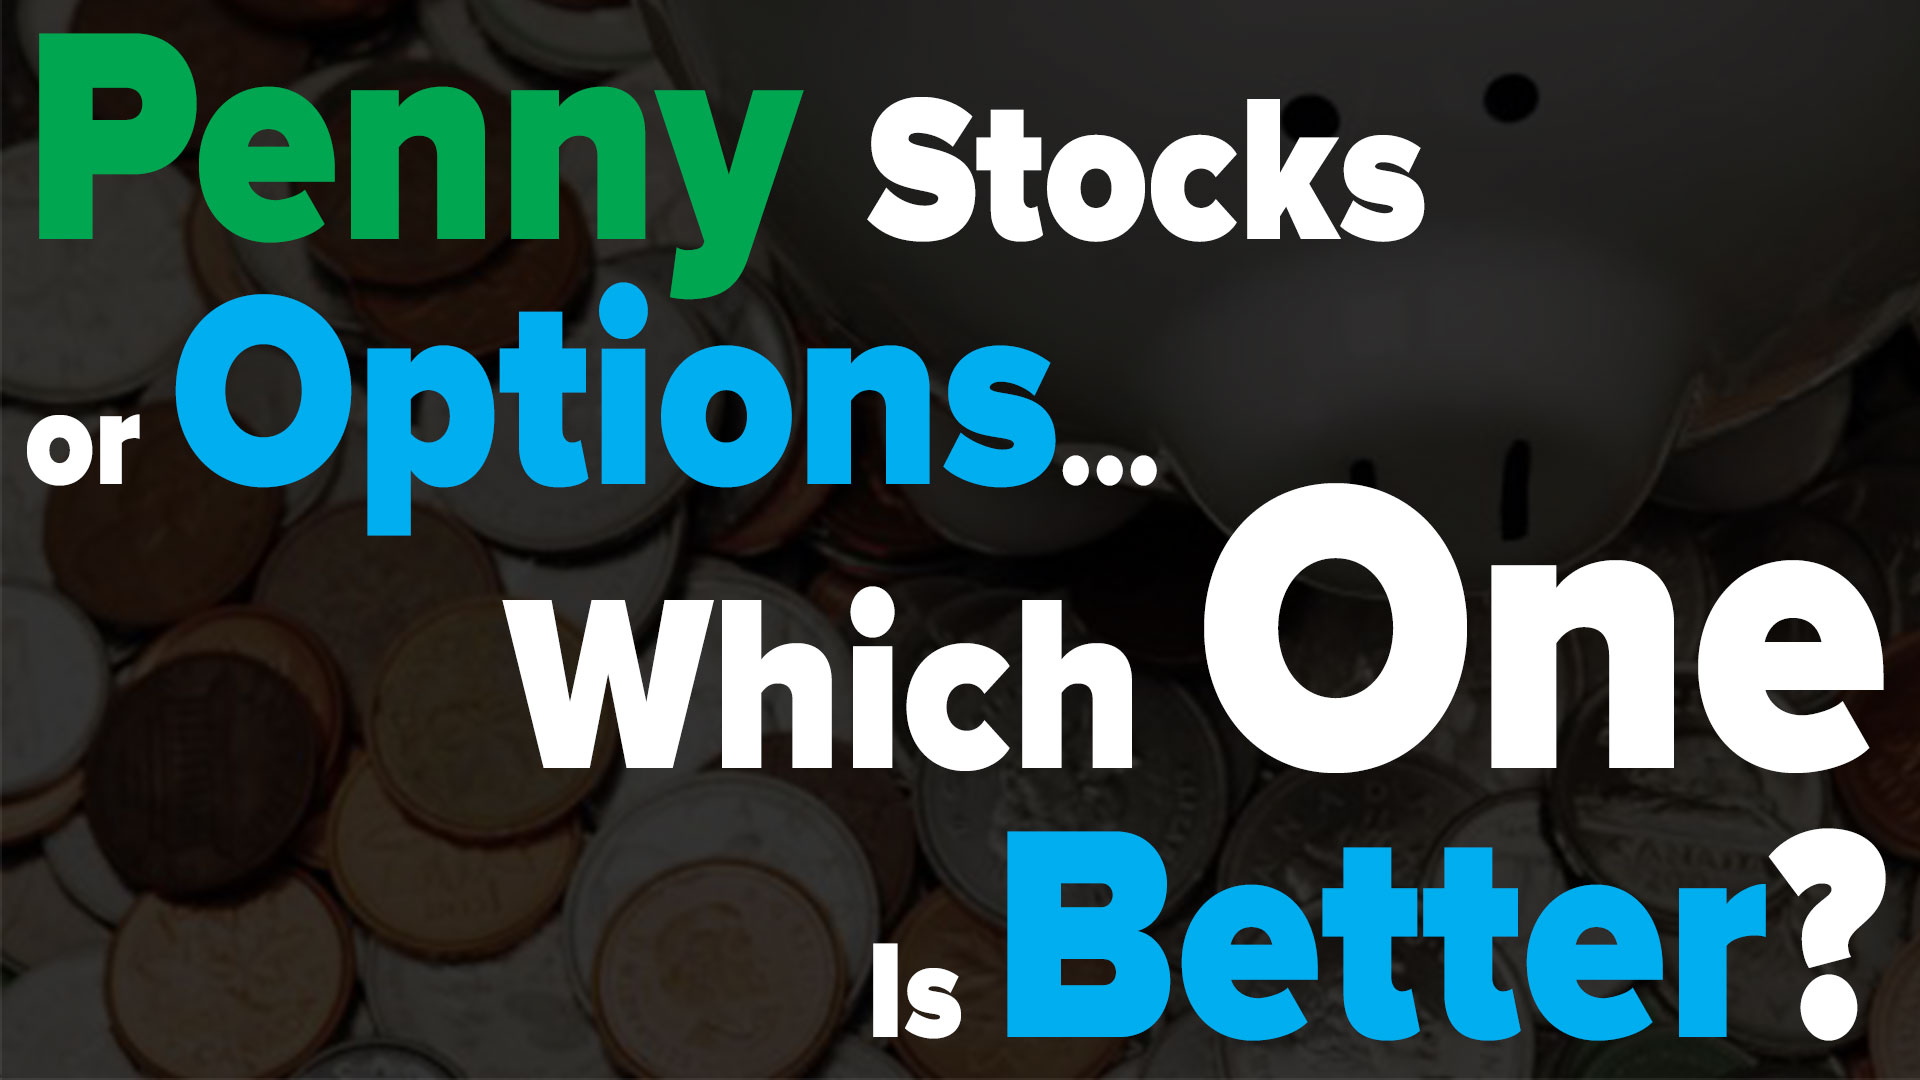 Penny stocks vs binary options